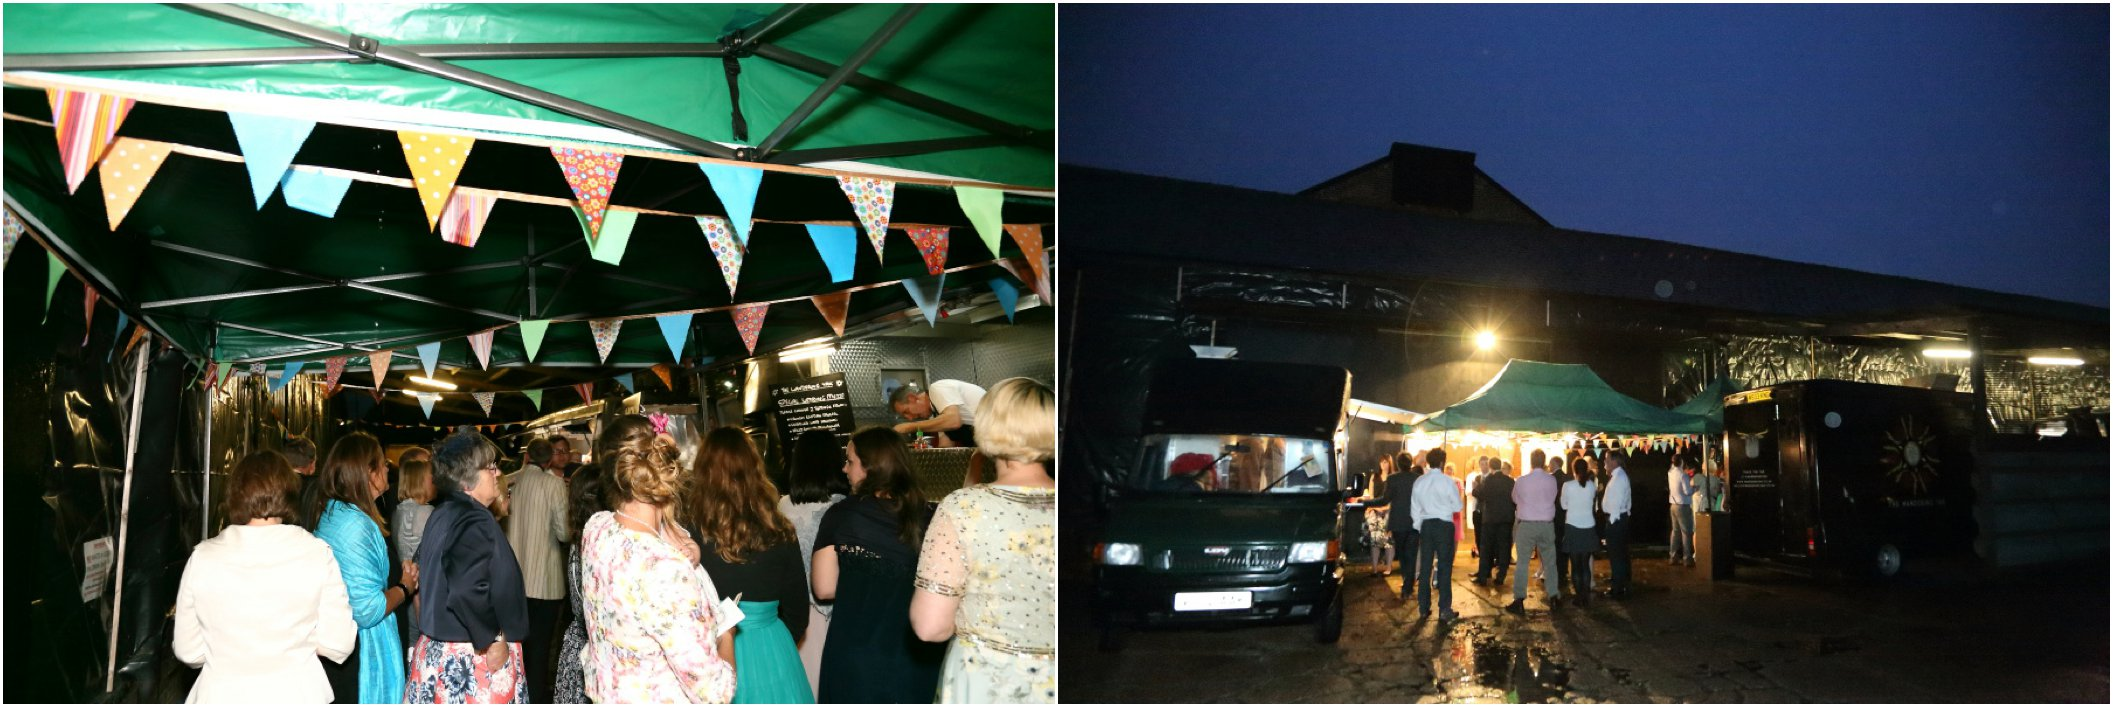 amazing street food vans at Childerley wedding reception, Cambridge